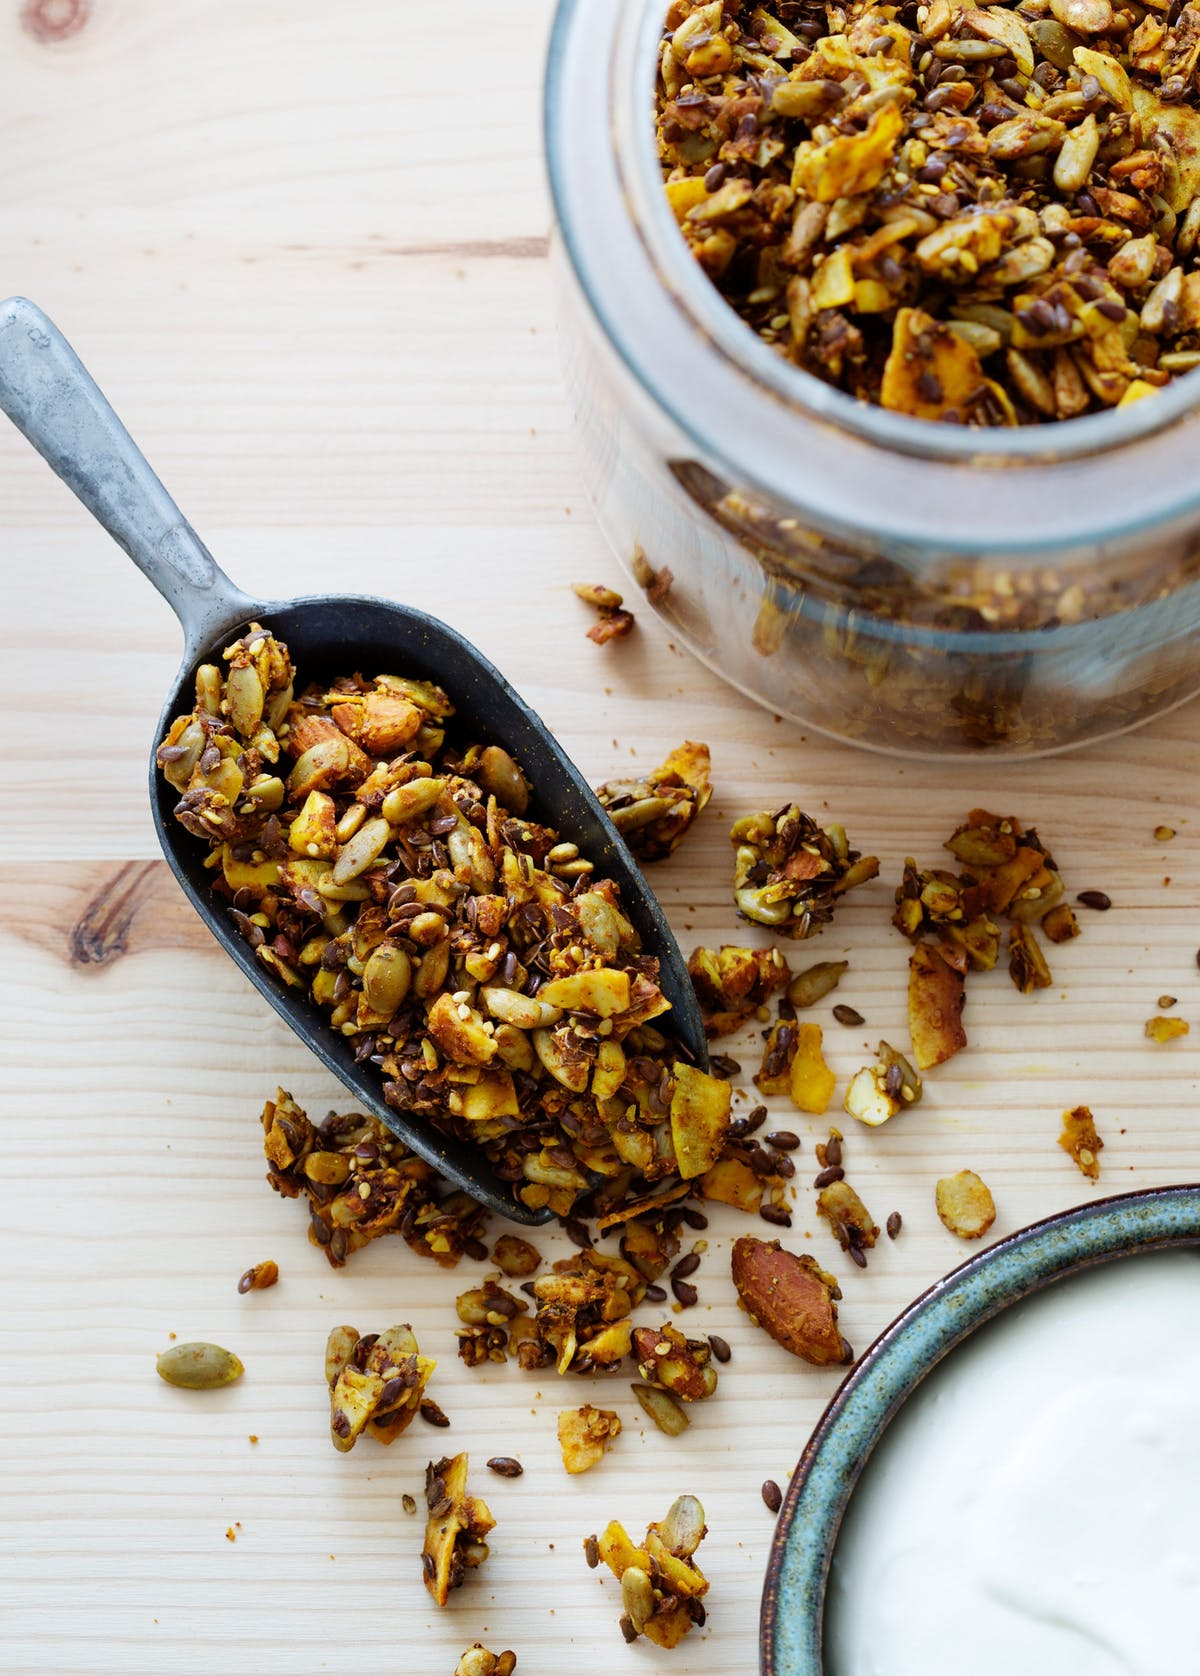 Golden low-carb granola